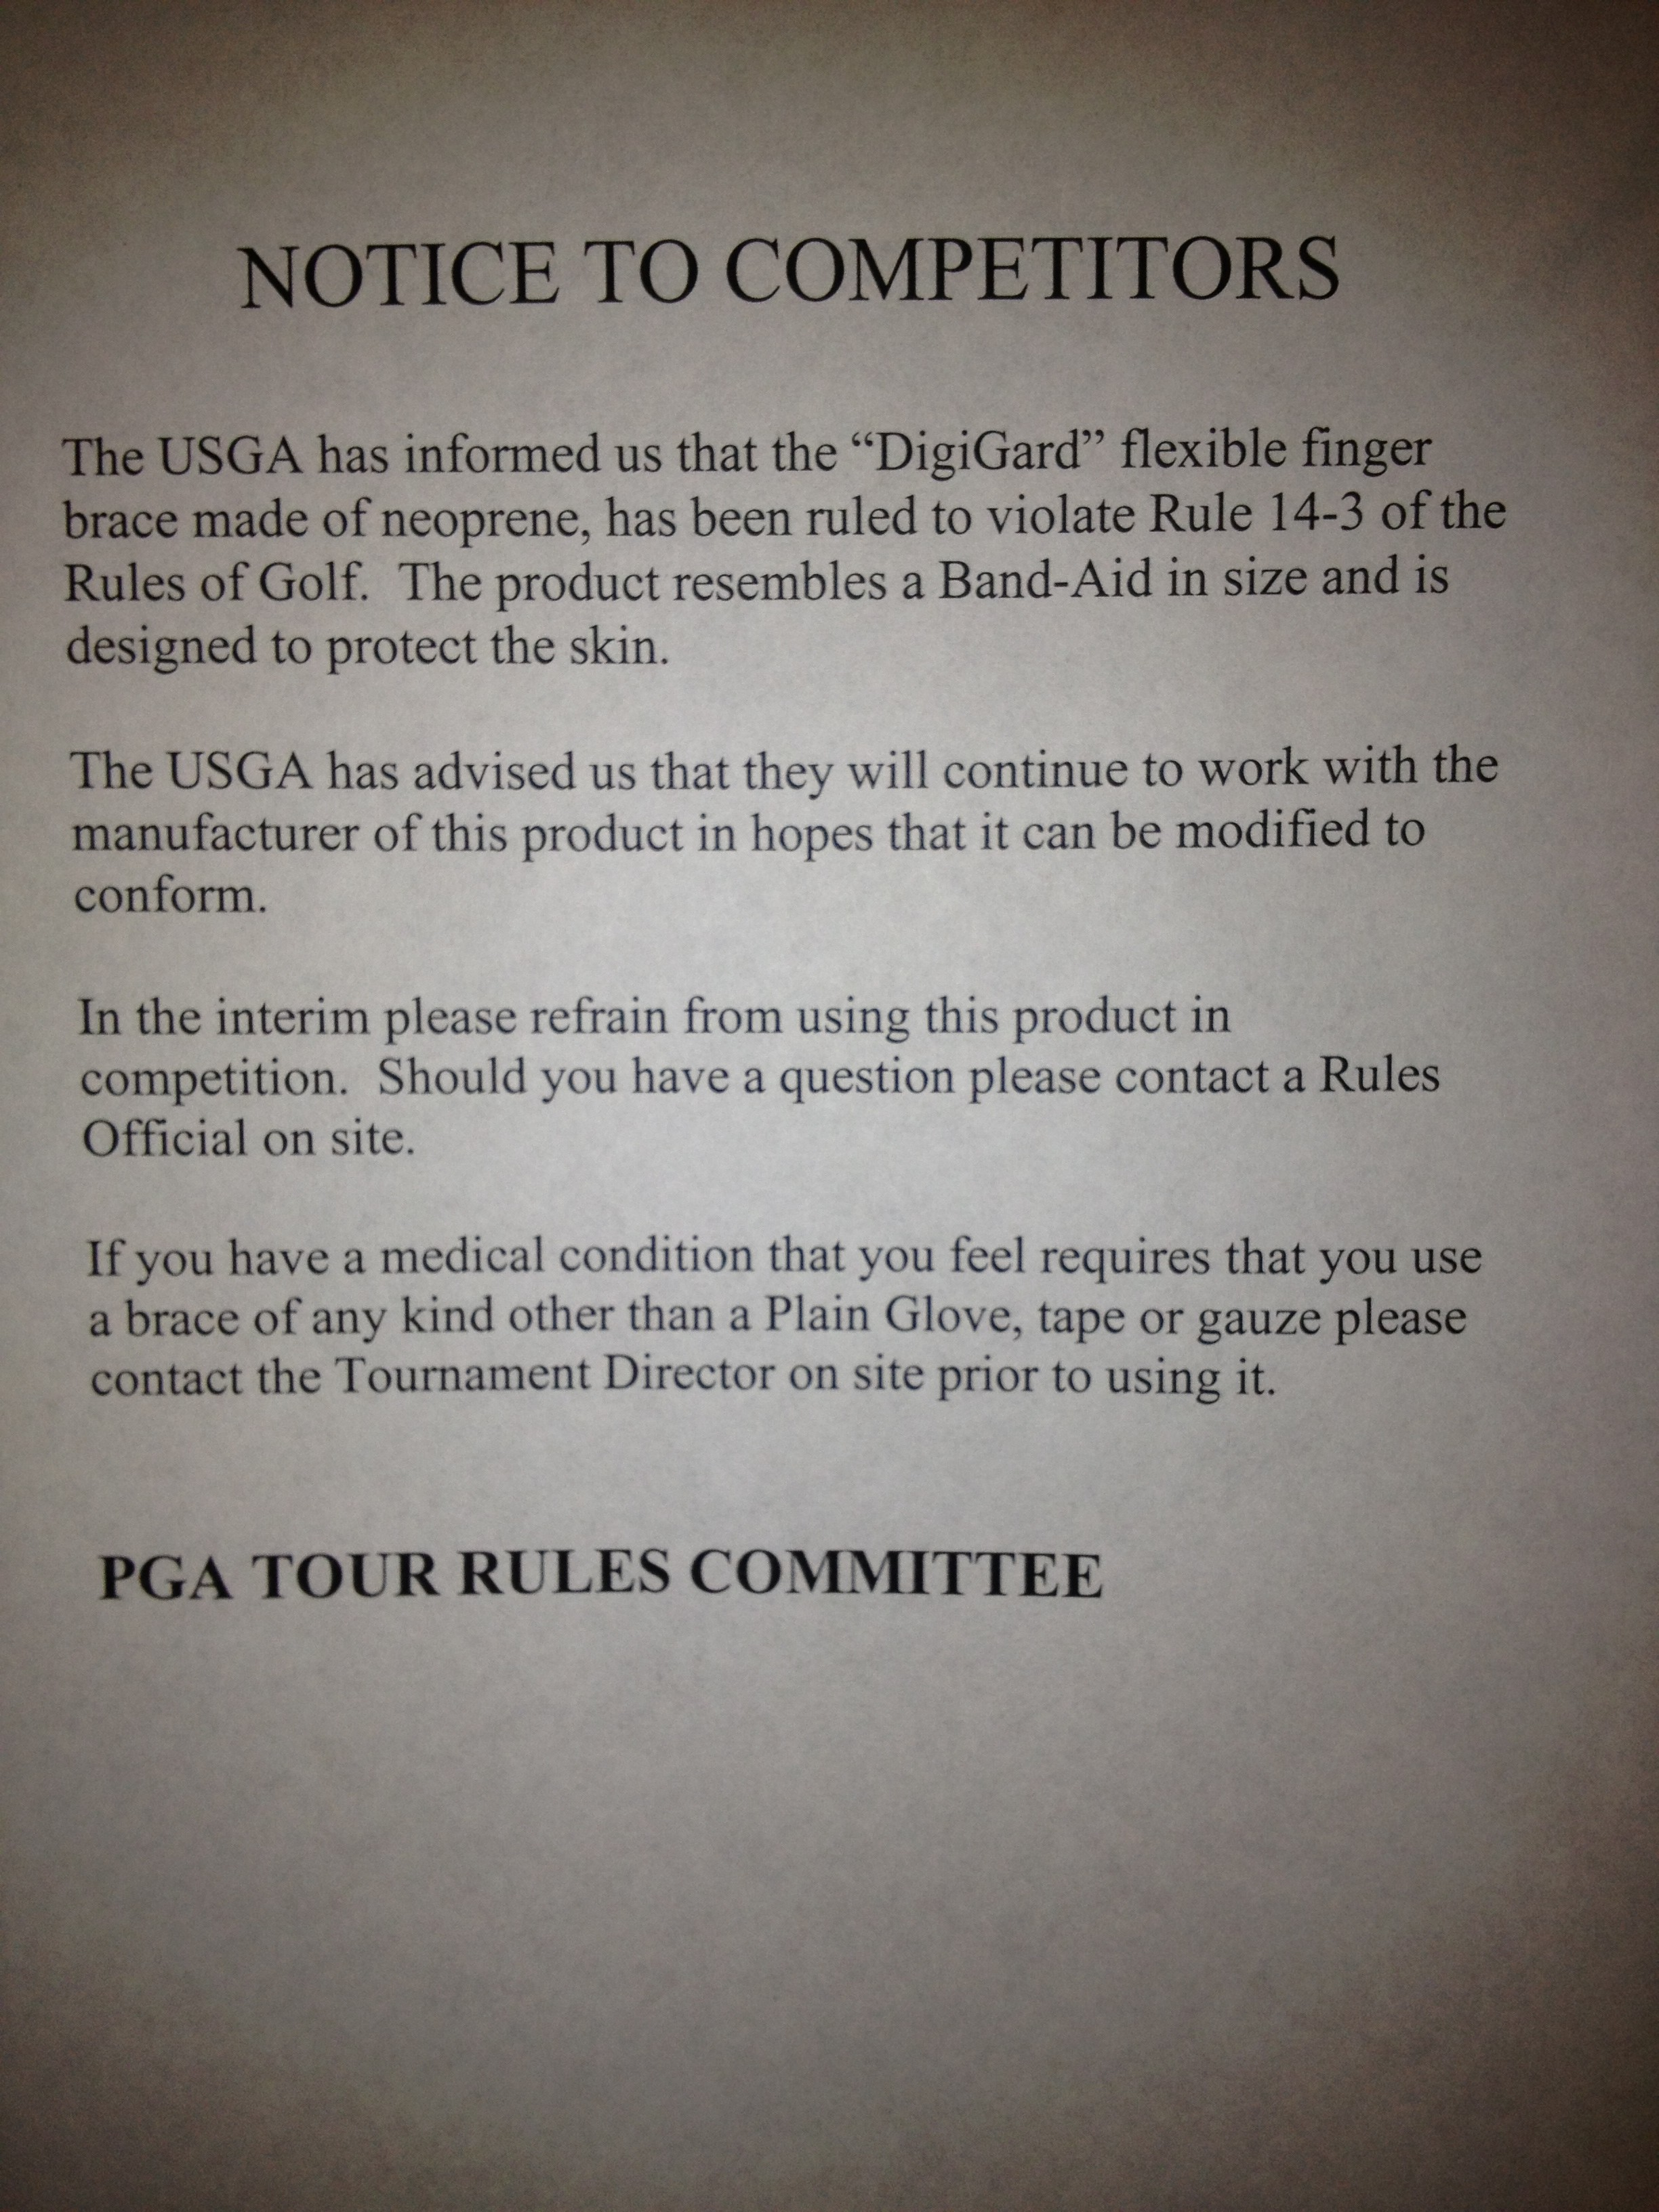 DigiGard, a neoprene sleeve that is used instead of tape, was deemed to be non-conforming by the PGA Tour.